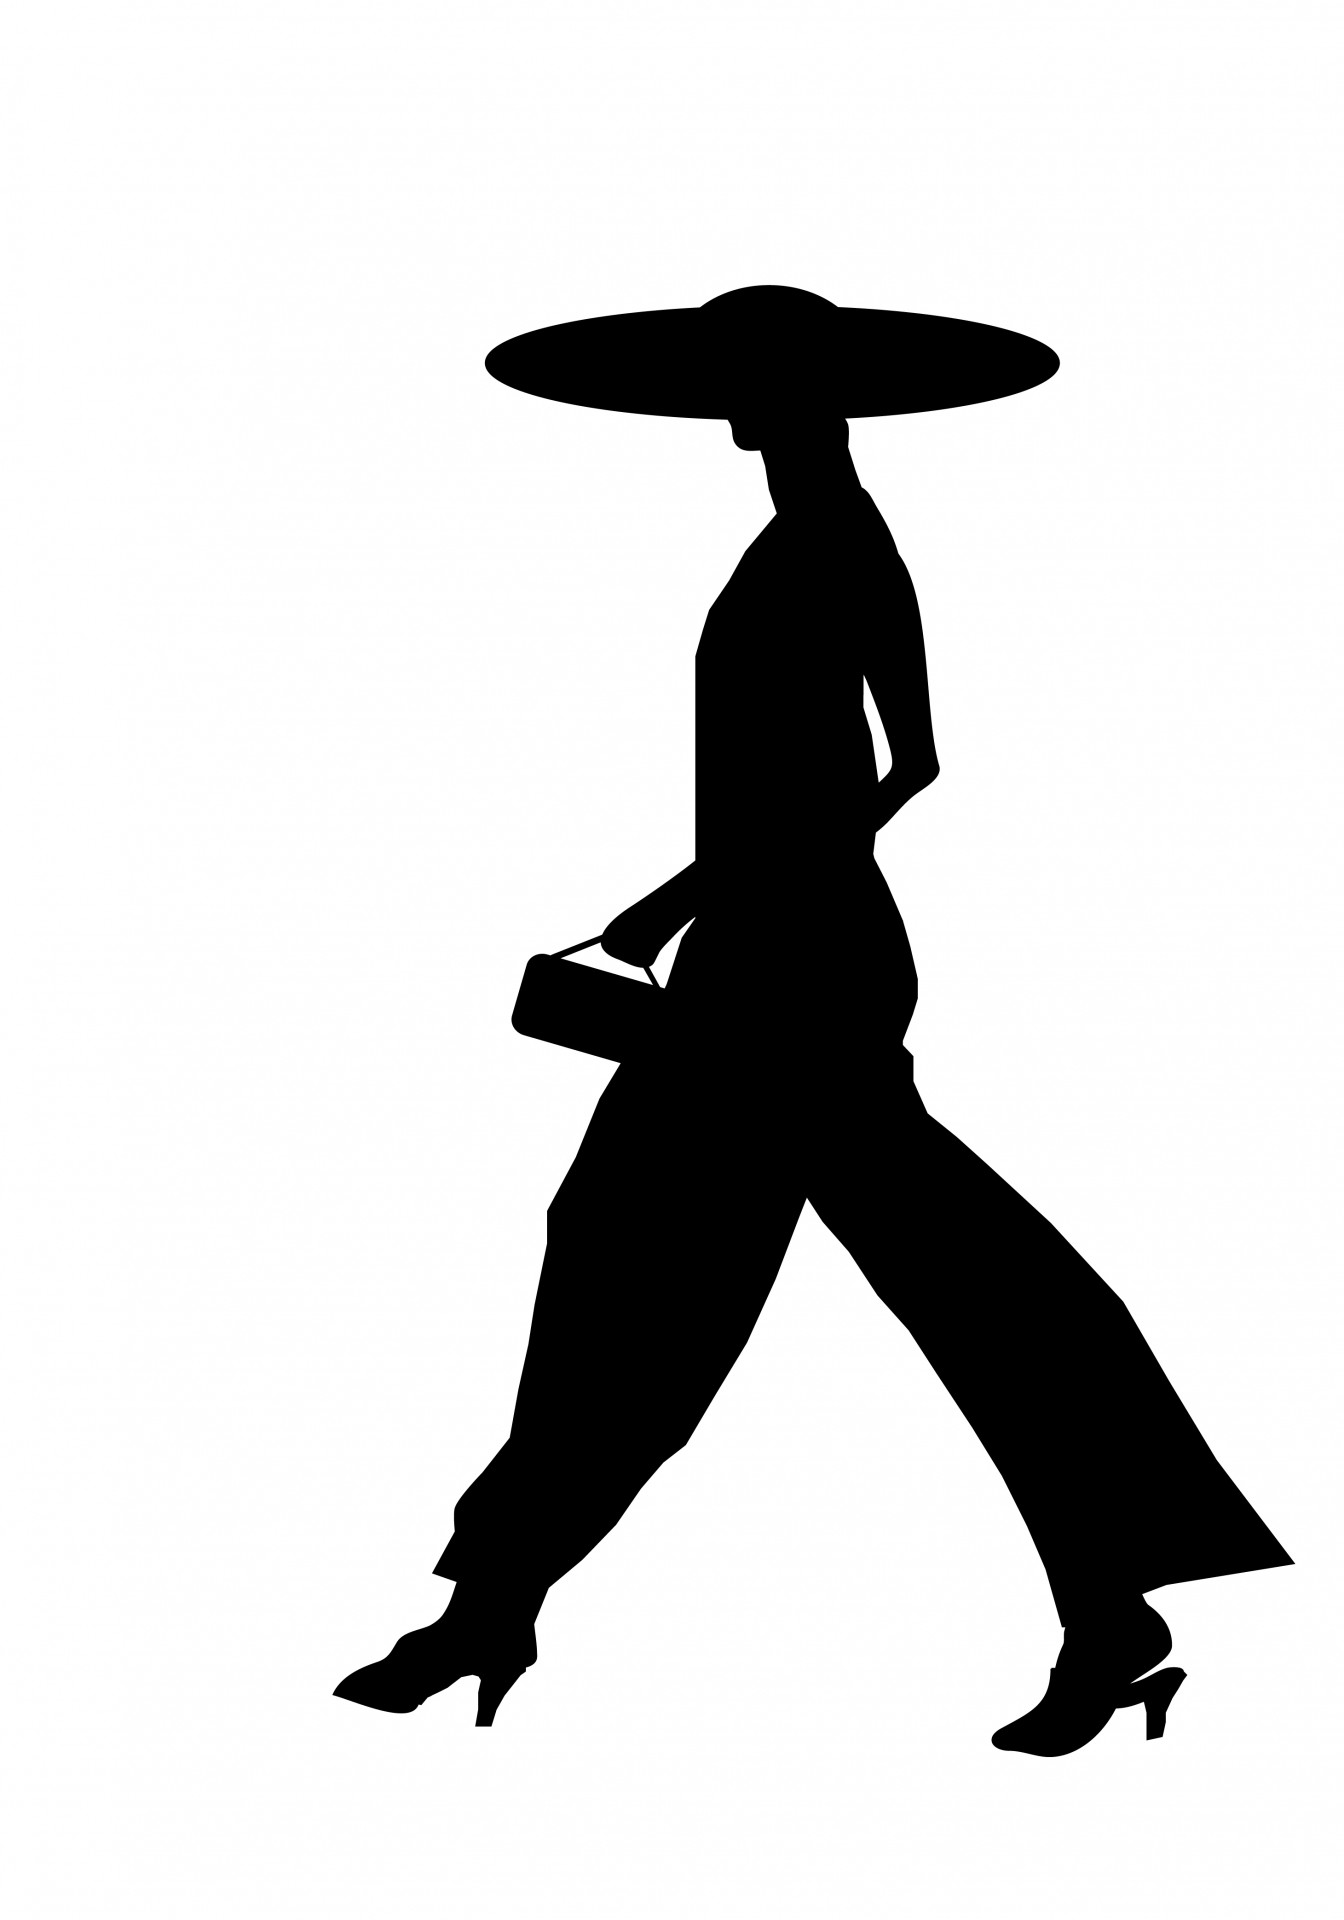 1344x1920 Woman Walking Silhouette Free Stock Photo